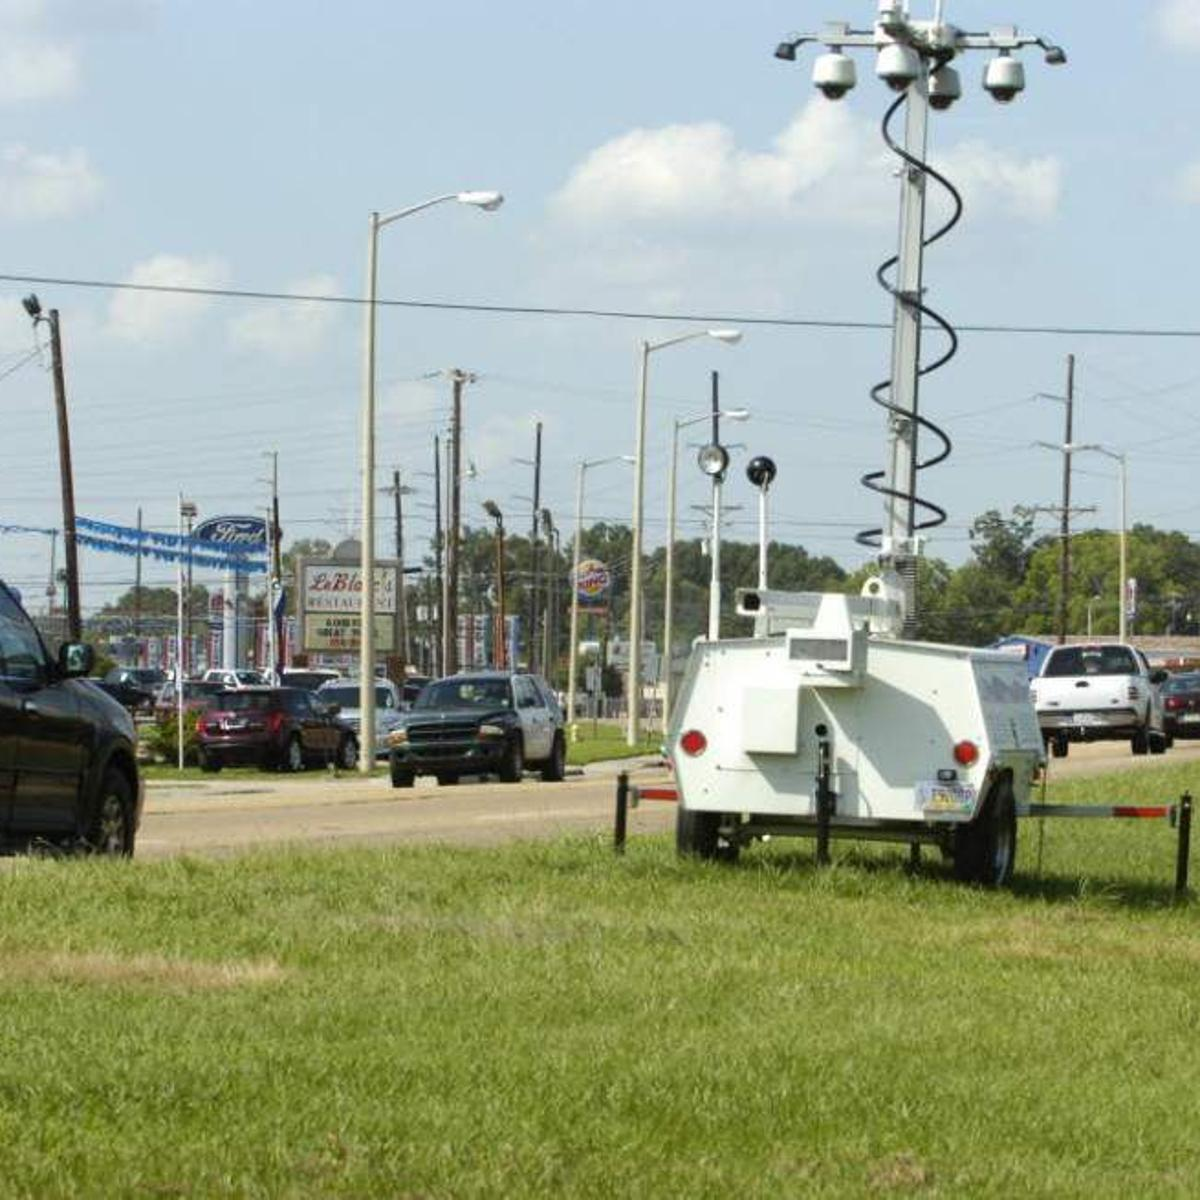 Suit against Gretna, Redflex over traffic camera tickets